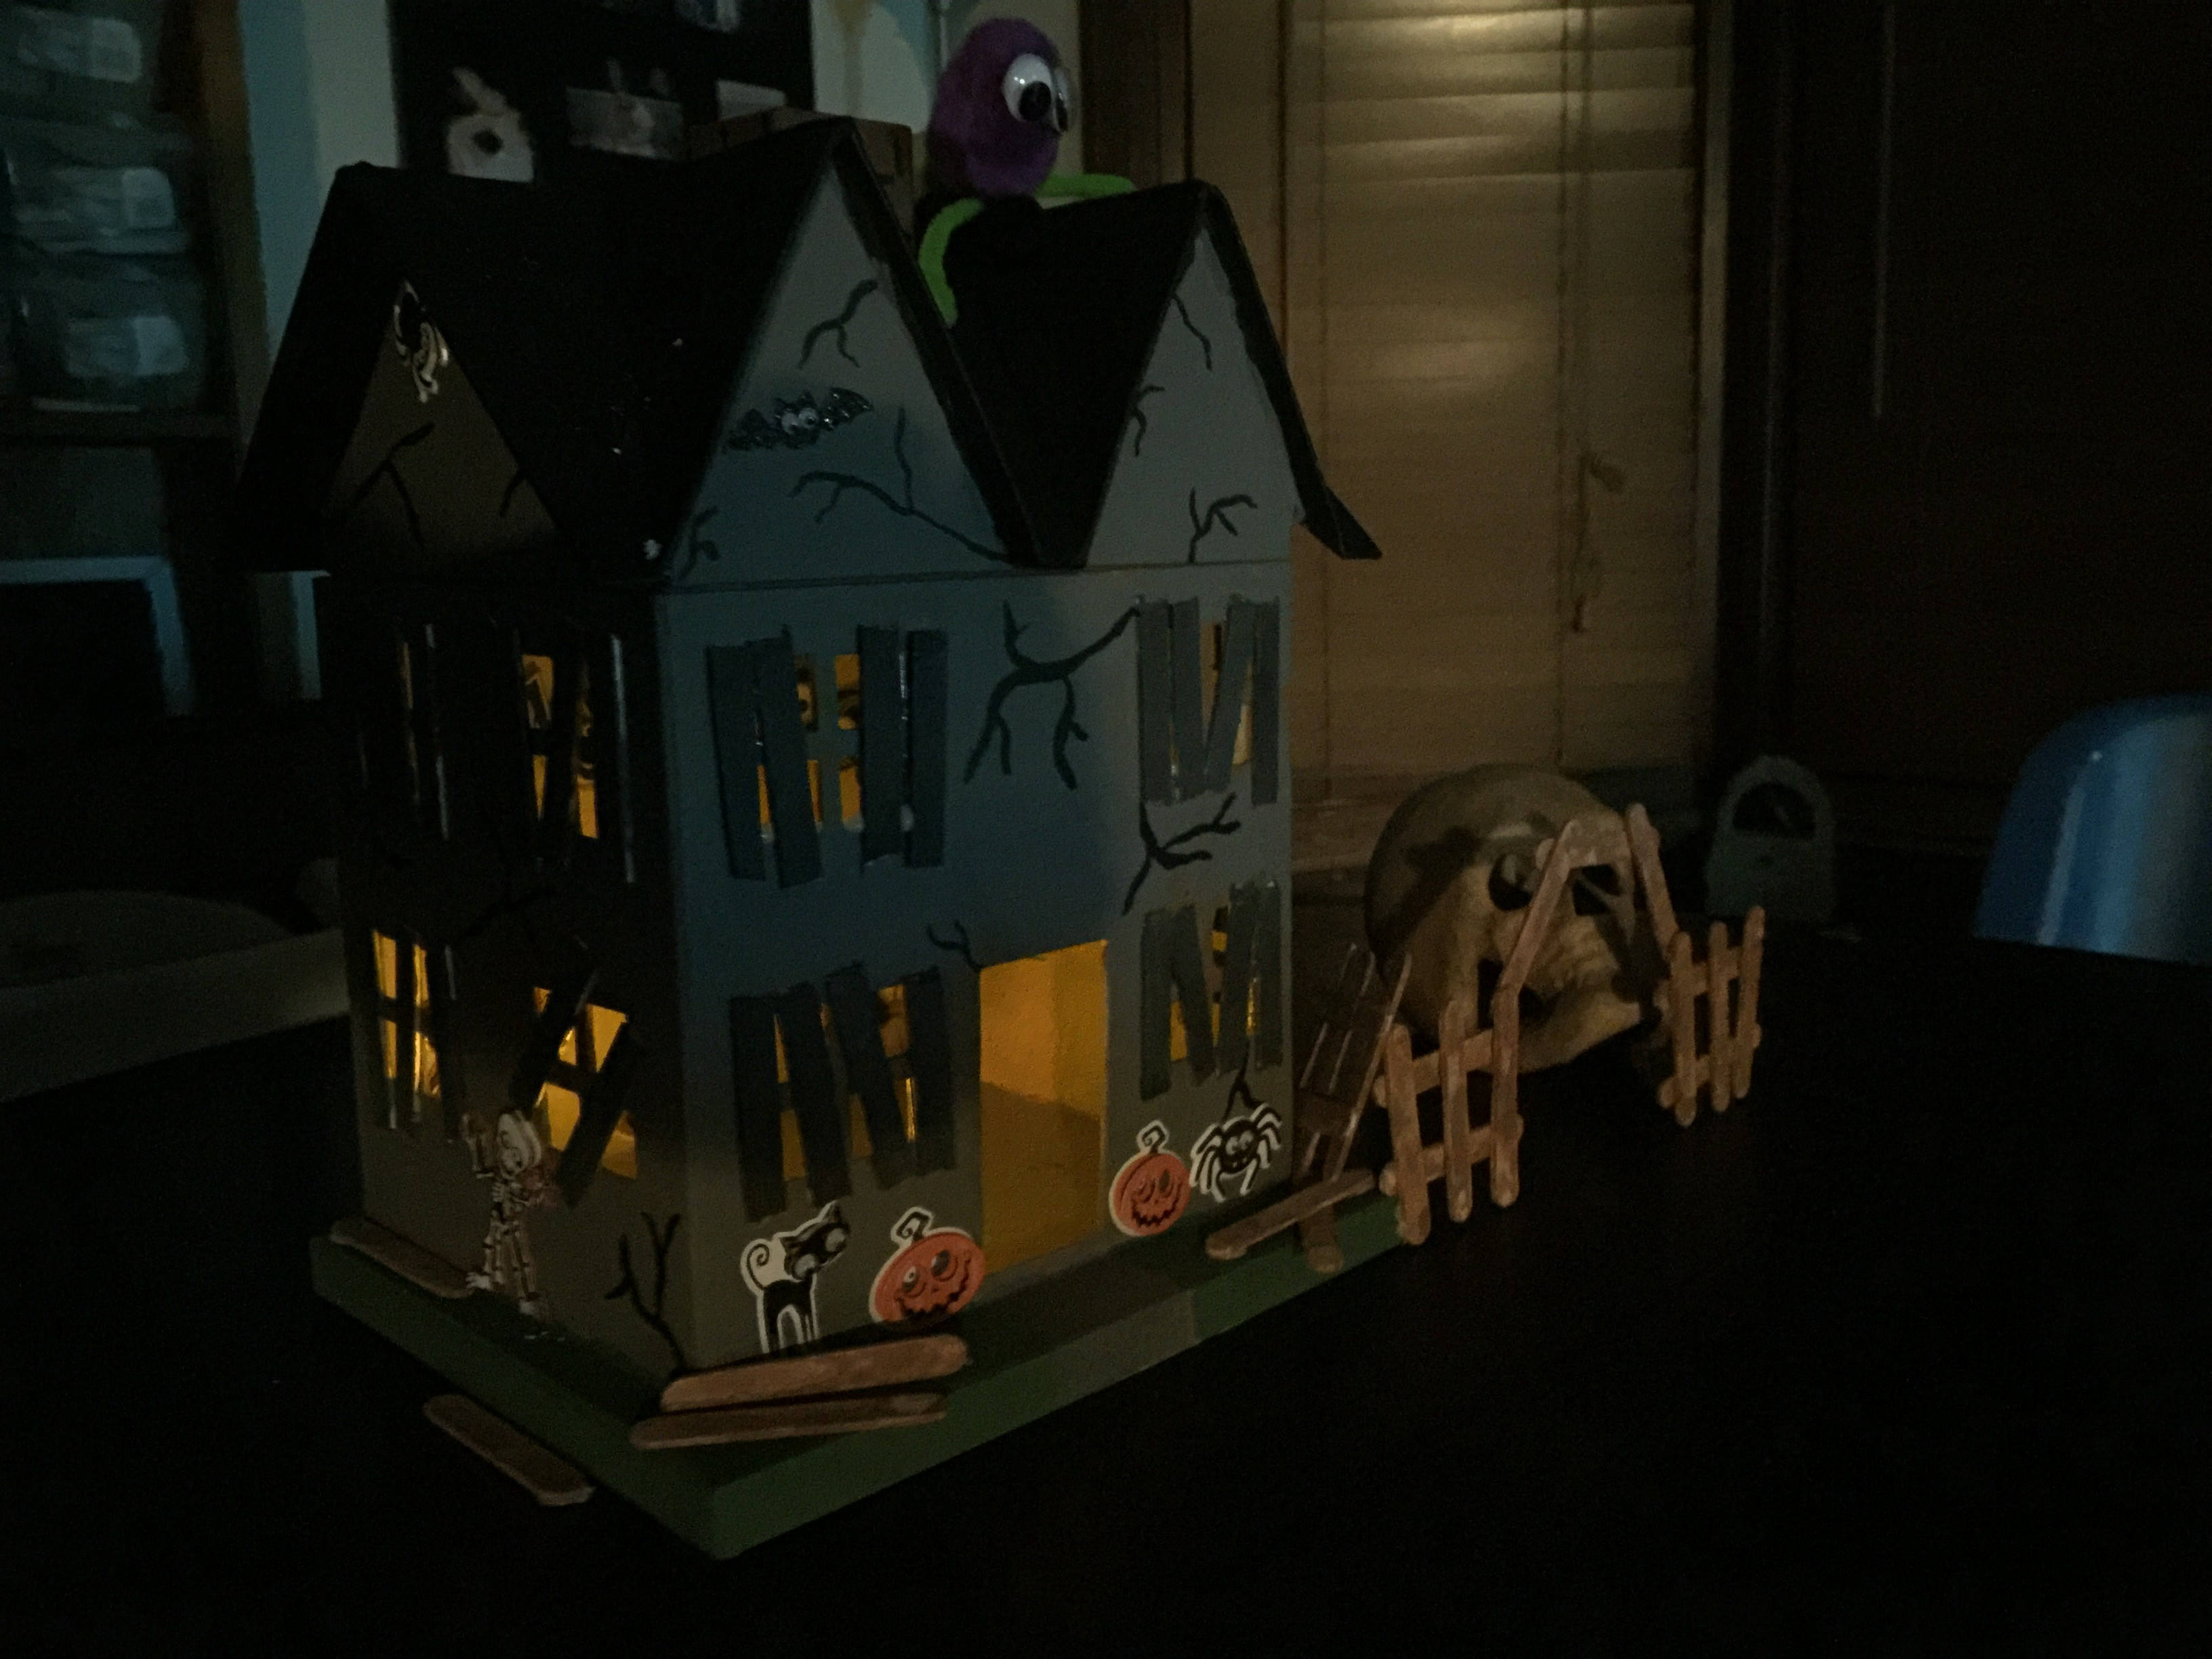 A Crafty Halloween Haunted House St Louis Dad